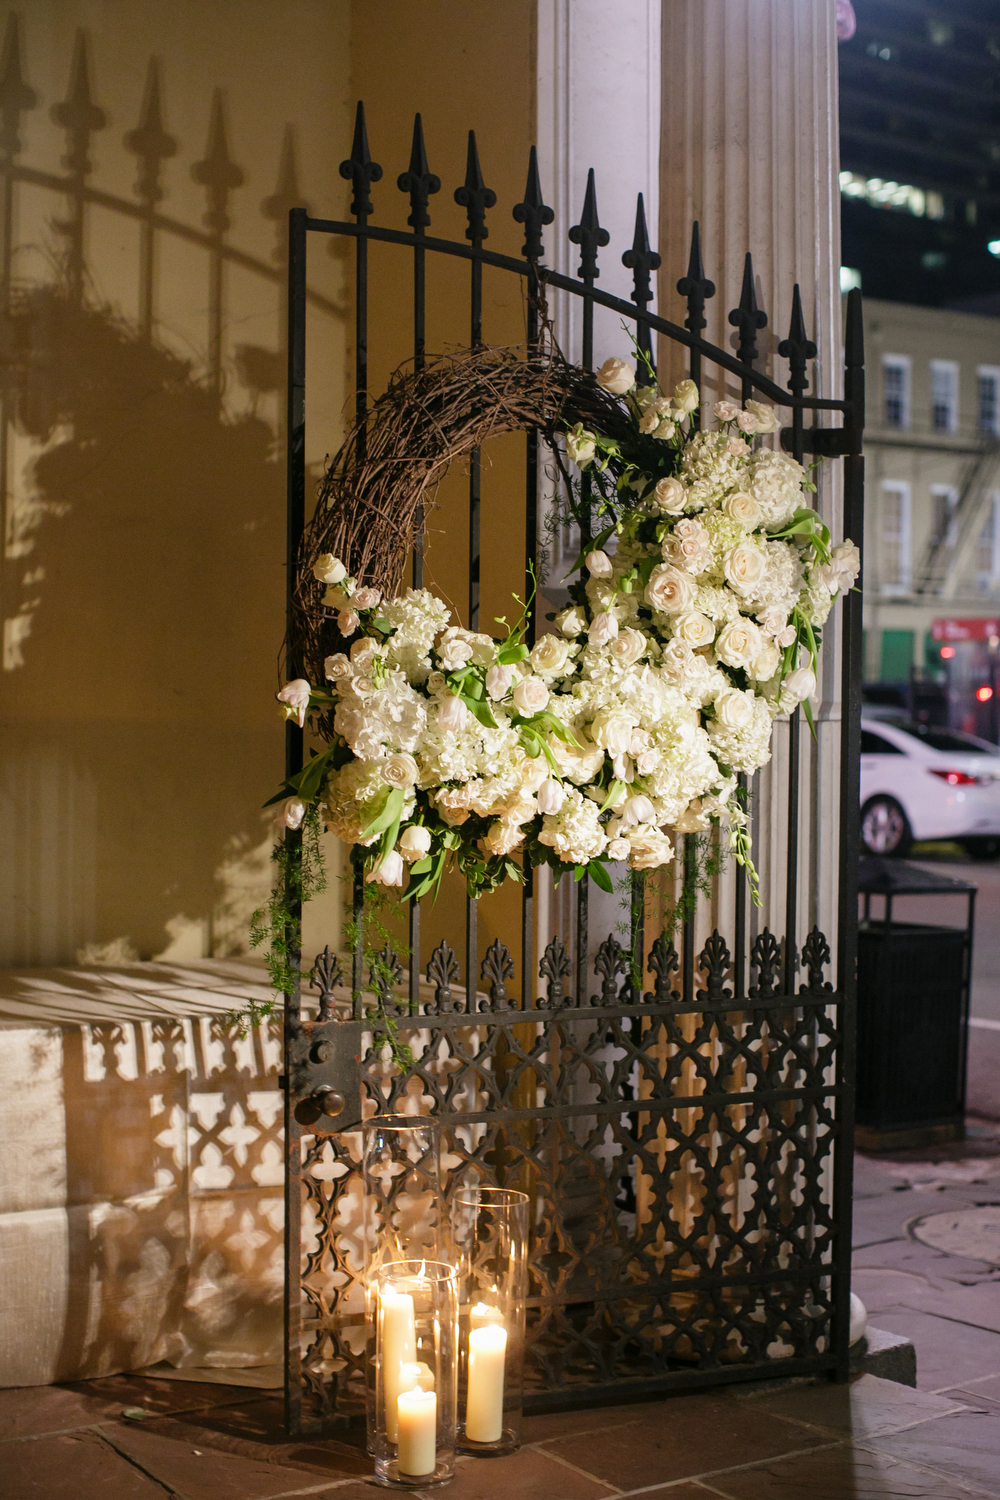 asymmetrical floral wreath on open gate at night with candle light at reception venue